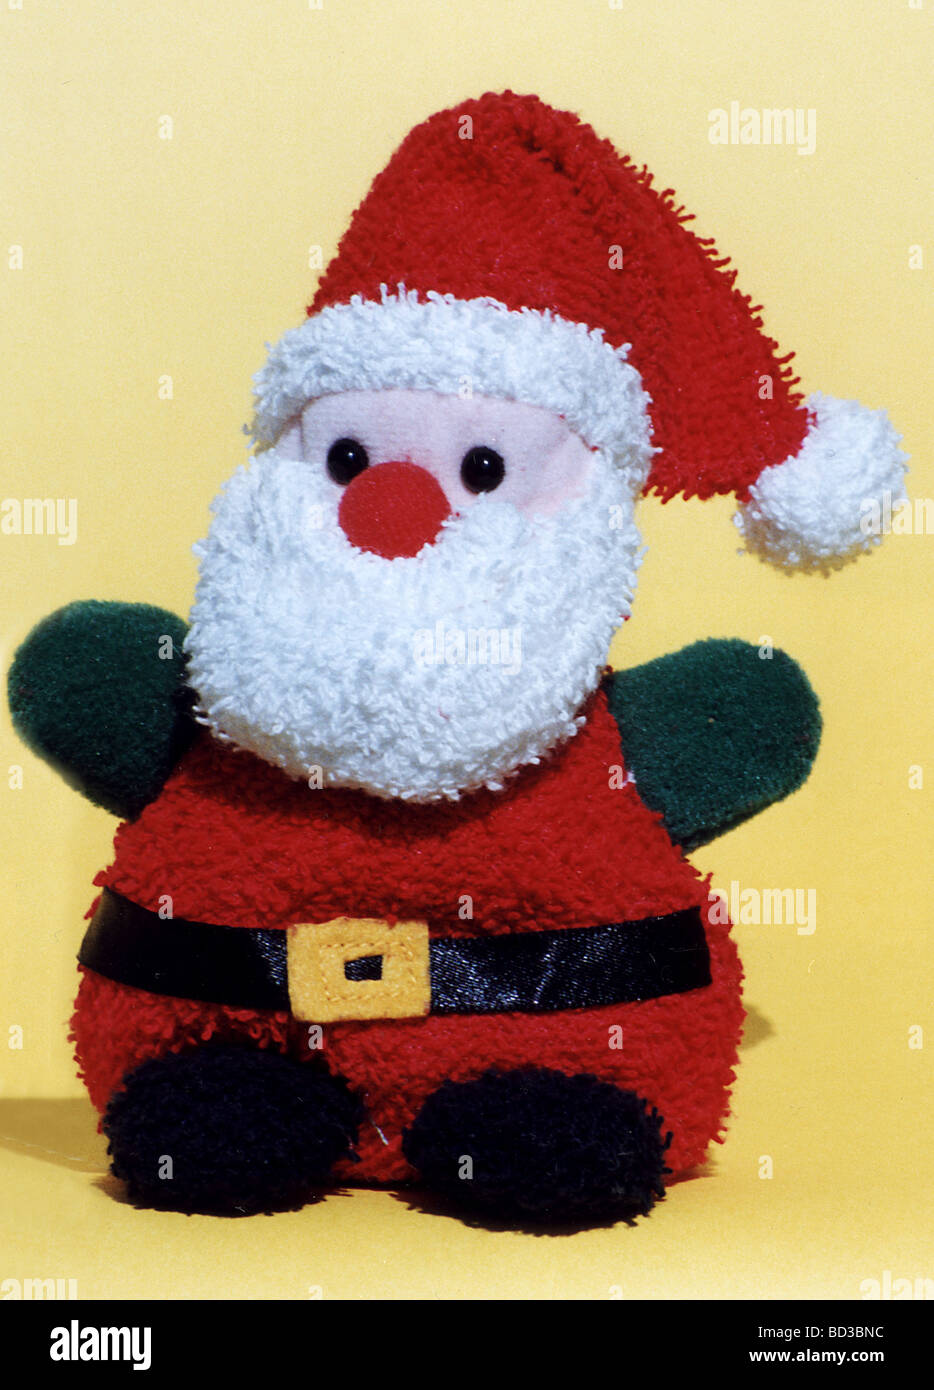 FATHER CHRISTMAS toy - Stock Image